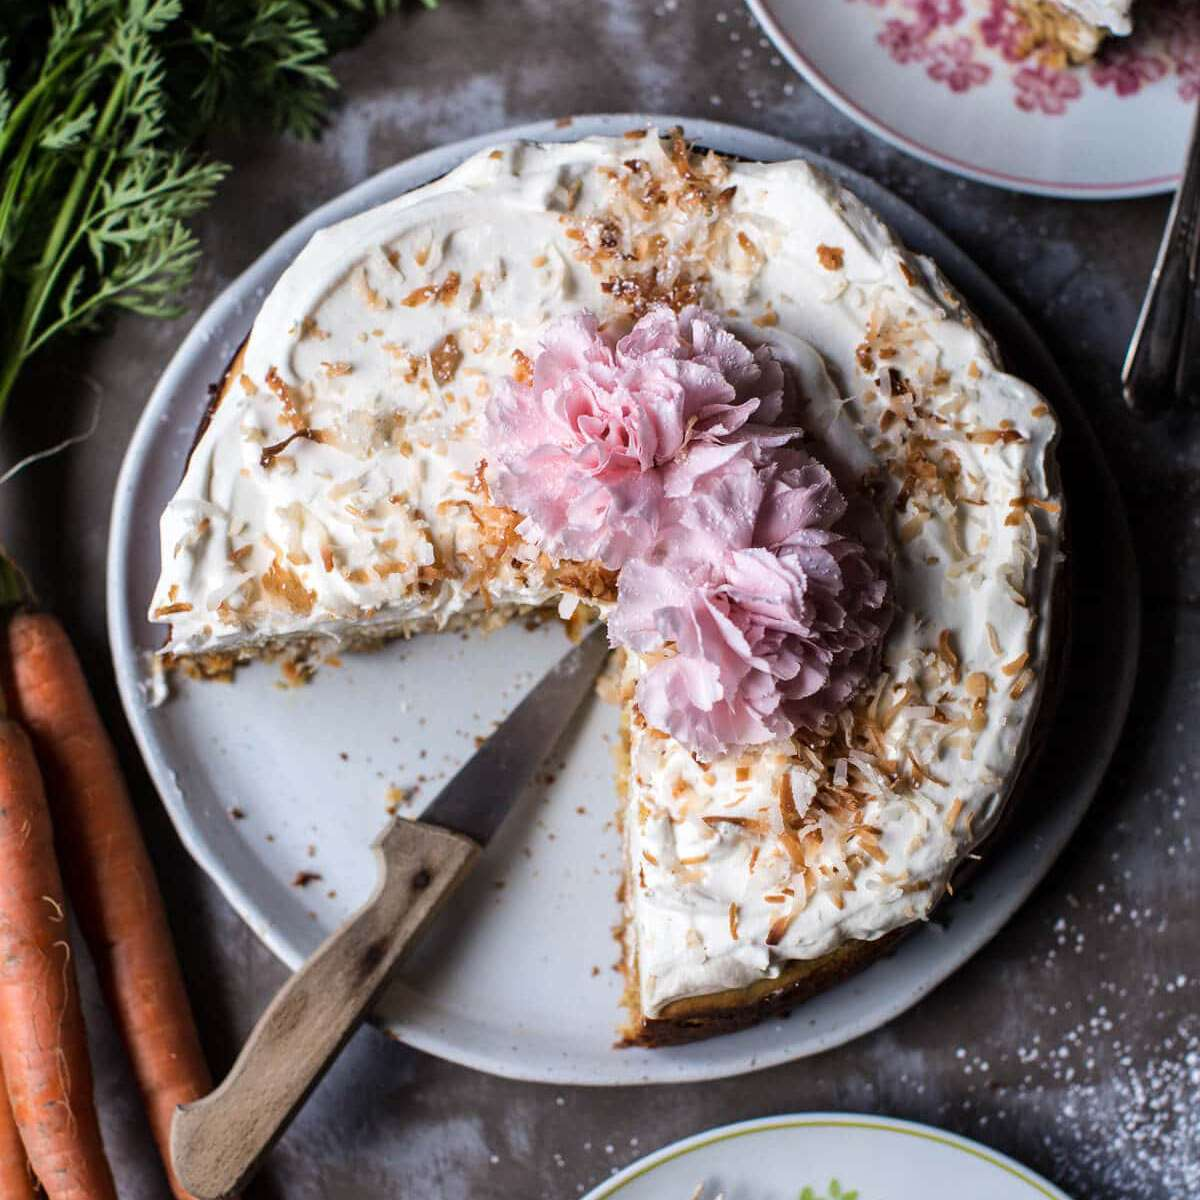 Master 10 of the Best Cheesecake Recipes of All Time